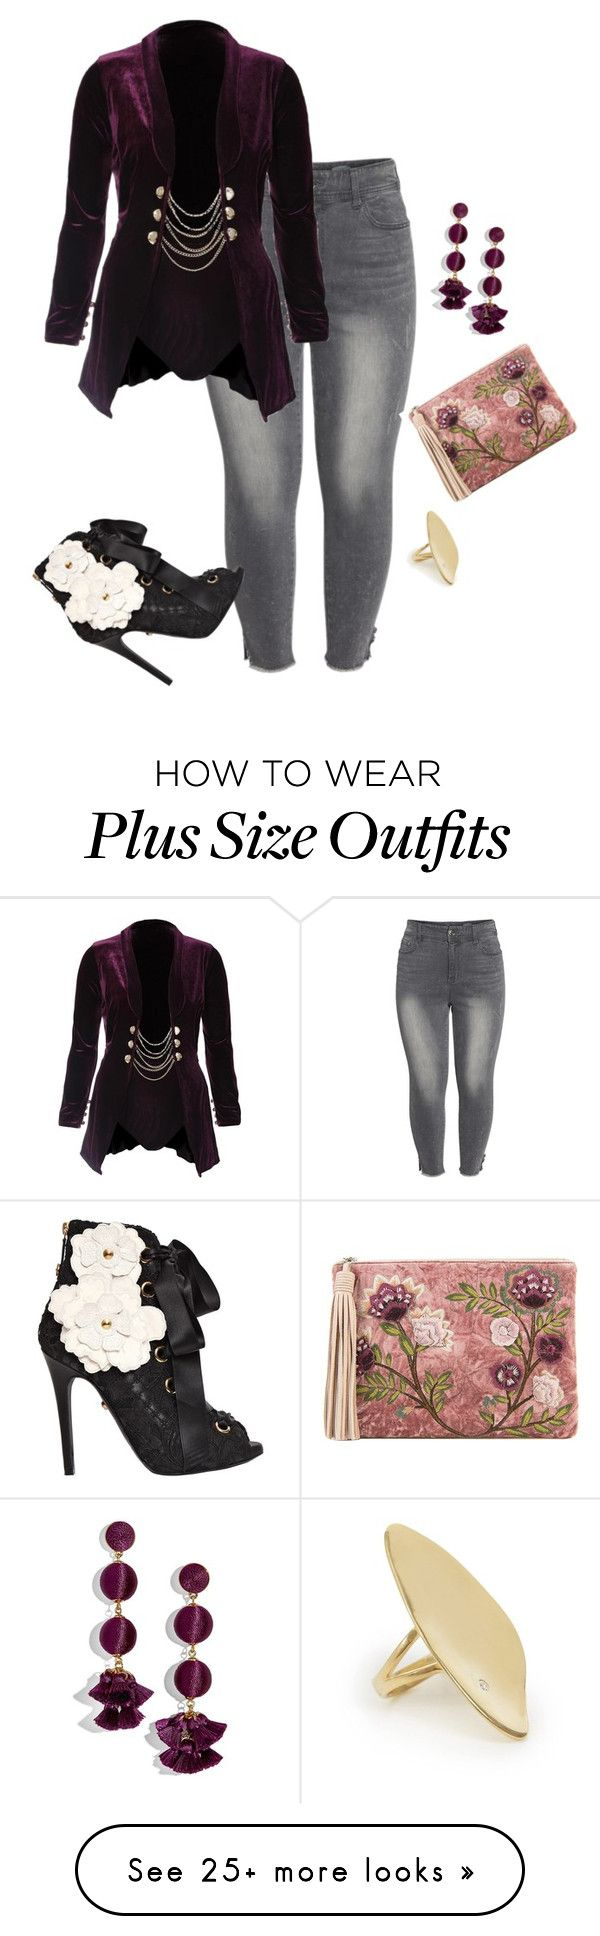 """""""Plus Chic Night Look"""" by xtrak on Polyvore featuring Seven7 Jeans, BaubleBar, Sam Edelman, FAUSTO PUGLISI, Calder and plus size clothing"""